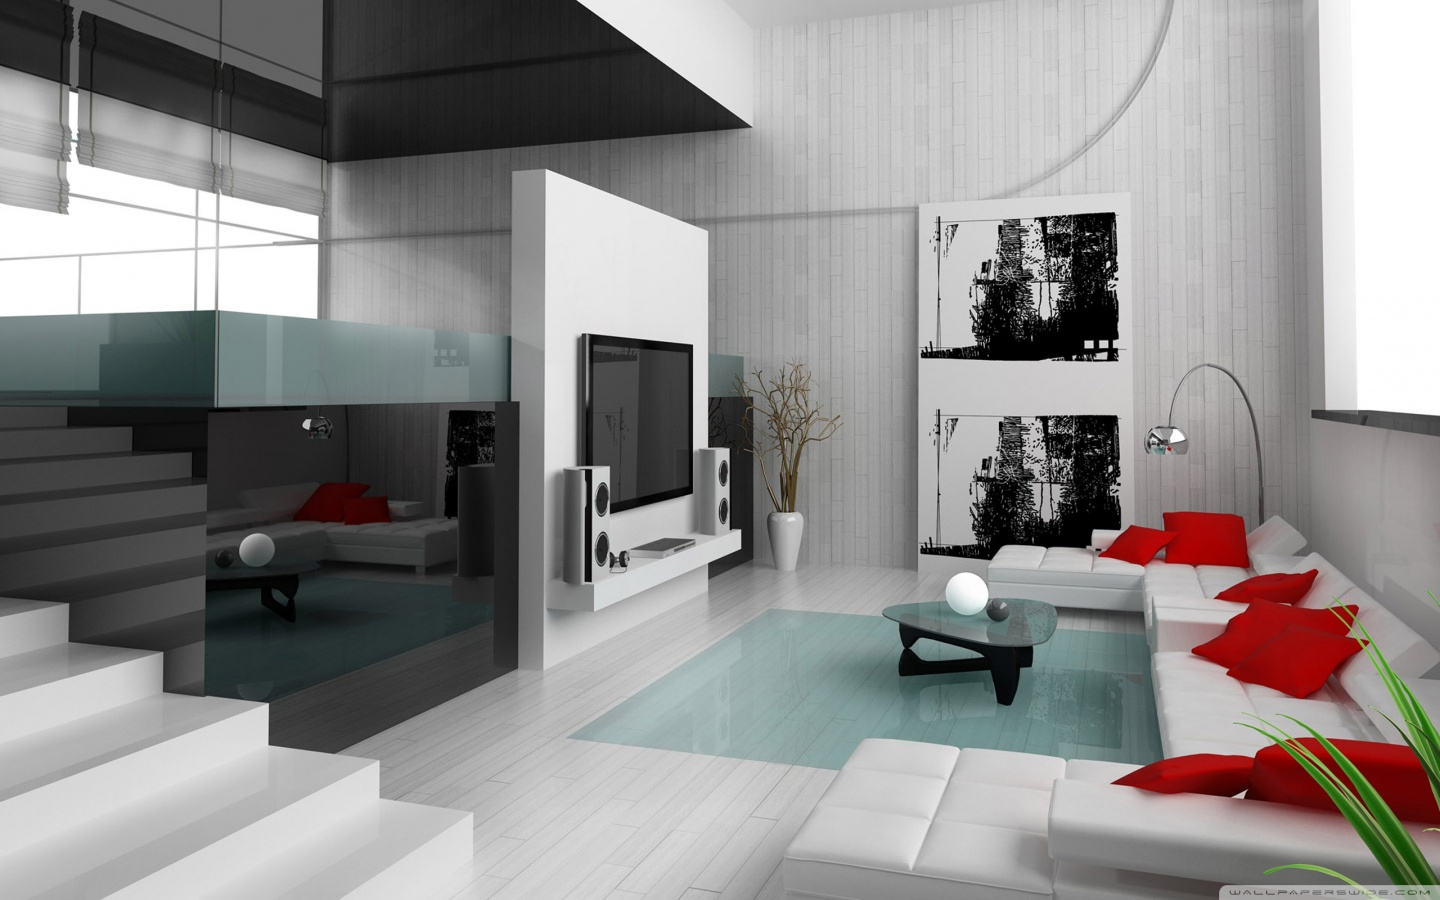 Minimalist interior design imagination art architecture for Minimalist condominium interior design